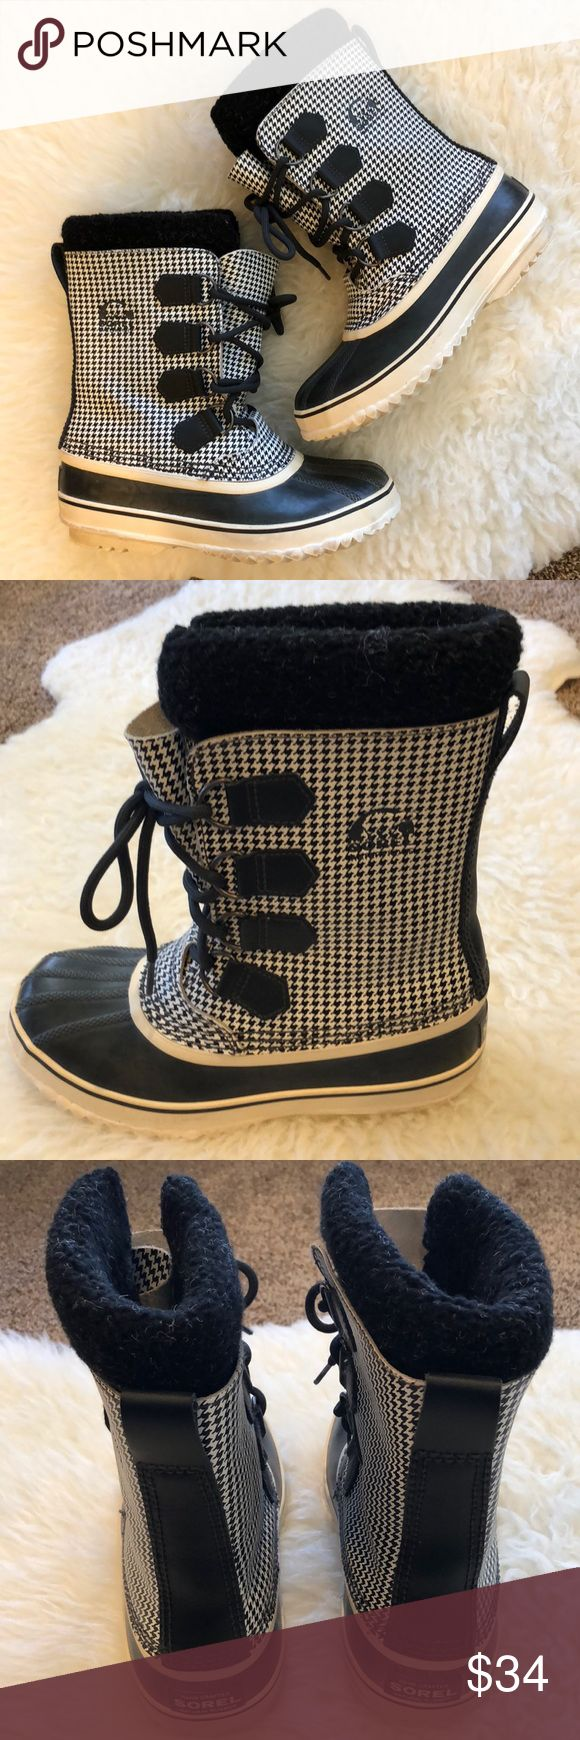 Sorel 1964 PAC Boot Houndstooth Waterproof Size 6 Melding vulcanized rubber with waterproof houndstooth textile, the heritage Slimpack 1964 keeps the elements out and the warmth in.  Cozy and warm inside, very little wear, clean and comfortable. Sorel Shoes Winter & Rain Boots